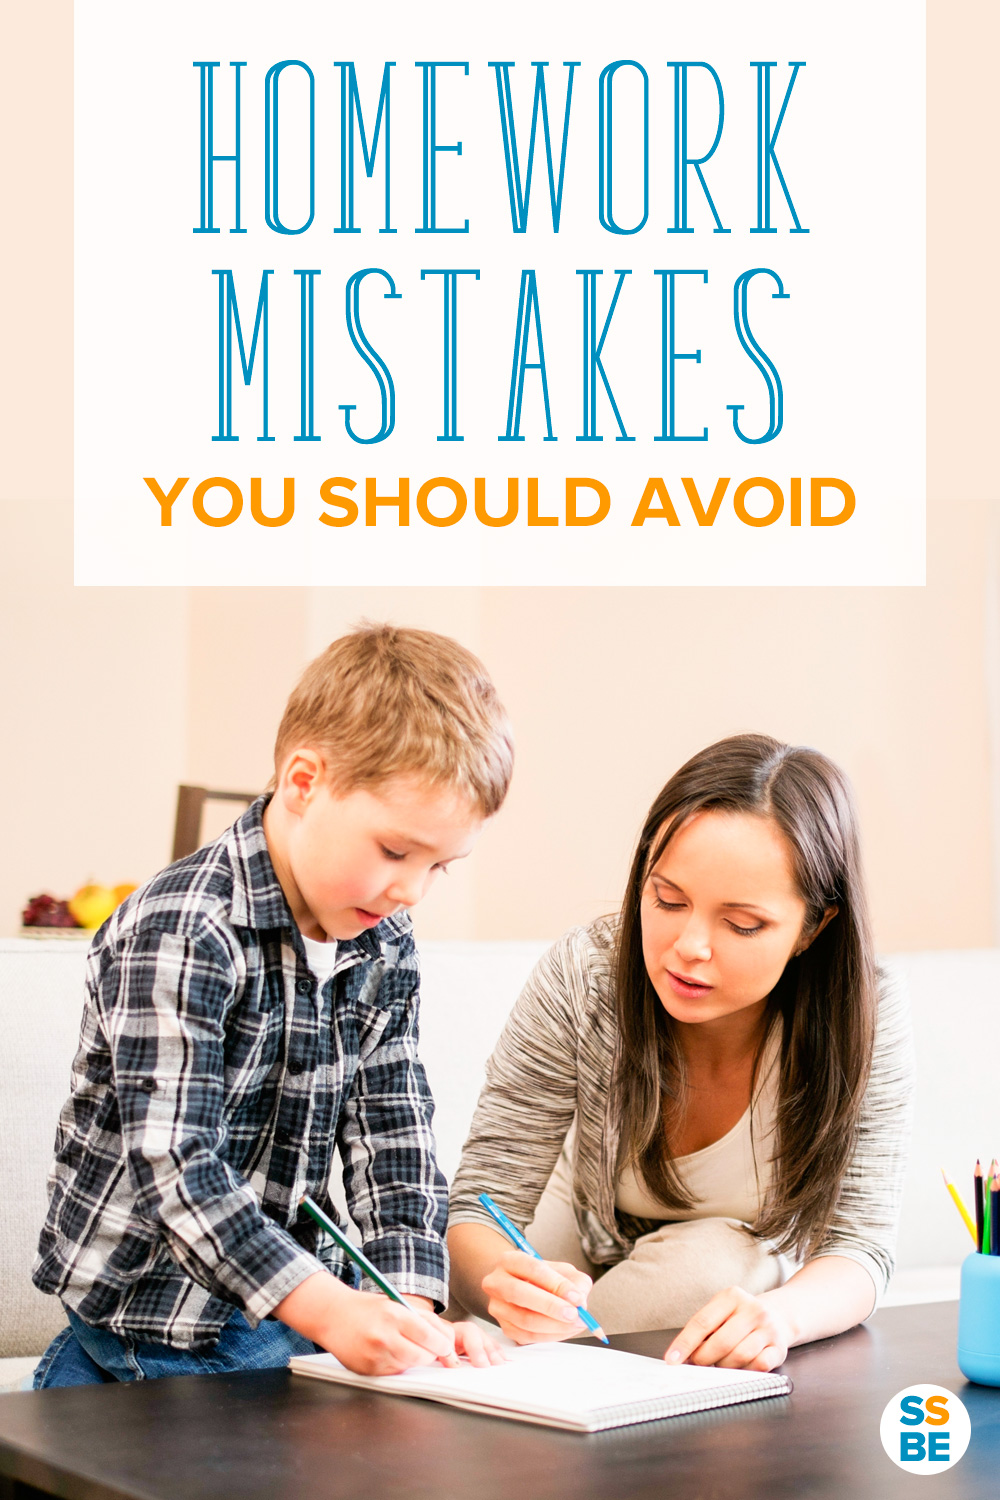 Helping kids with homework? These are the homework mistakes you should avoid! Learn what to do instead to get the most out of homework time with your child.